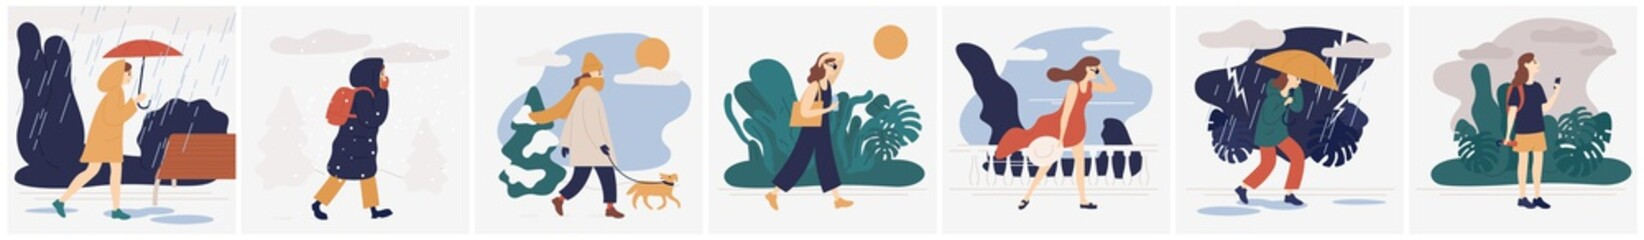 Fototapeta Collection of girl in various weather conditions. Bundle of young woman wearing seasonal clothes and walking on street in rain, snowfall, summer heat. Colorful vector illustration in flat style.